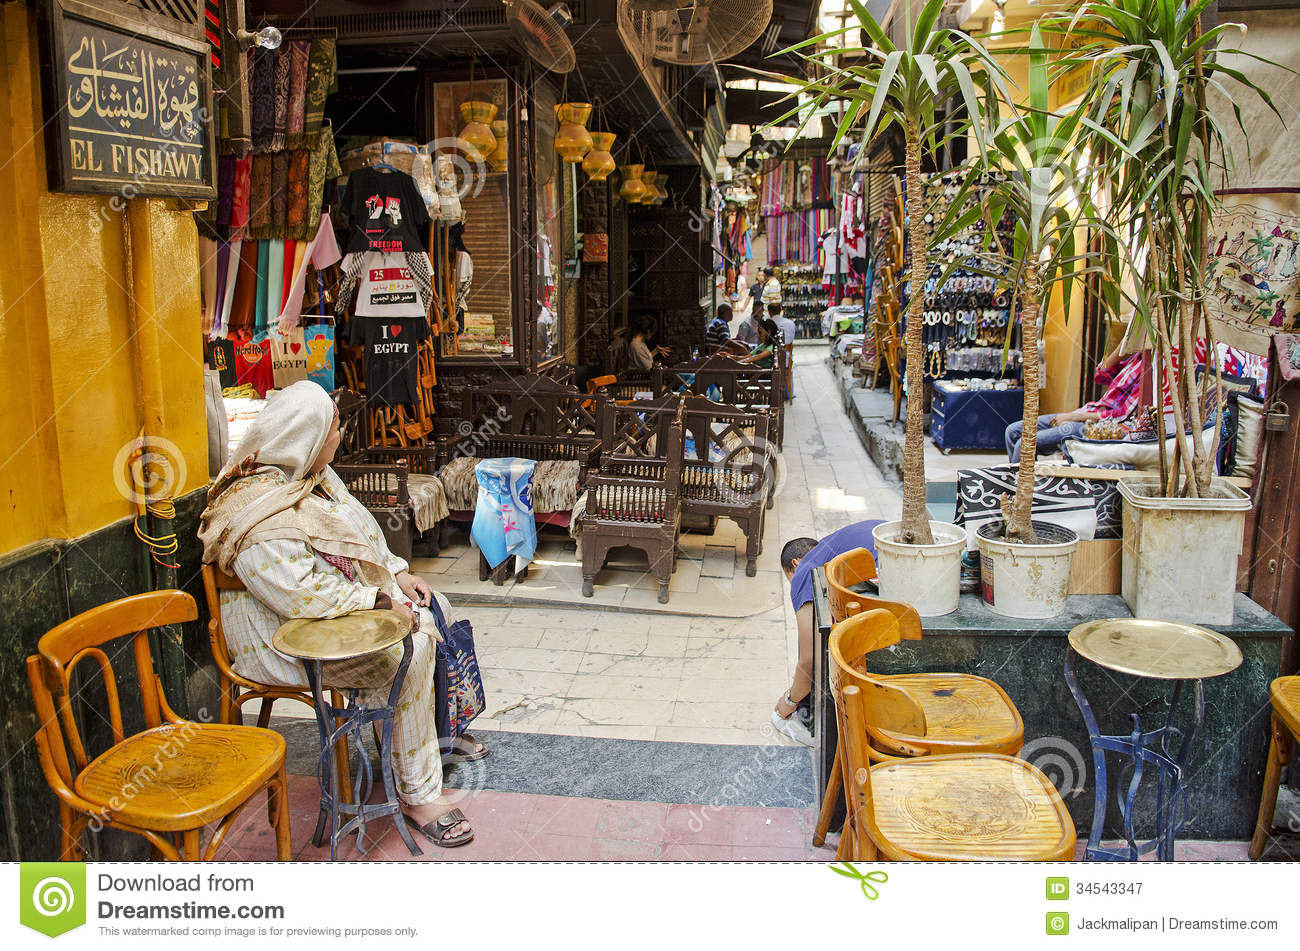 El fishawy cafe in cairo souk egypt editorial photography for Shopping in cairo